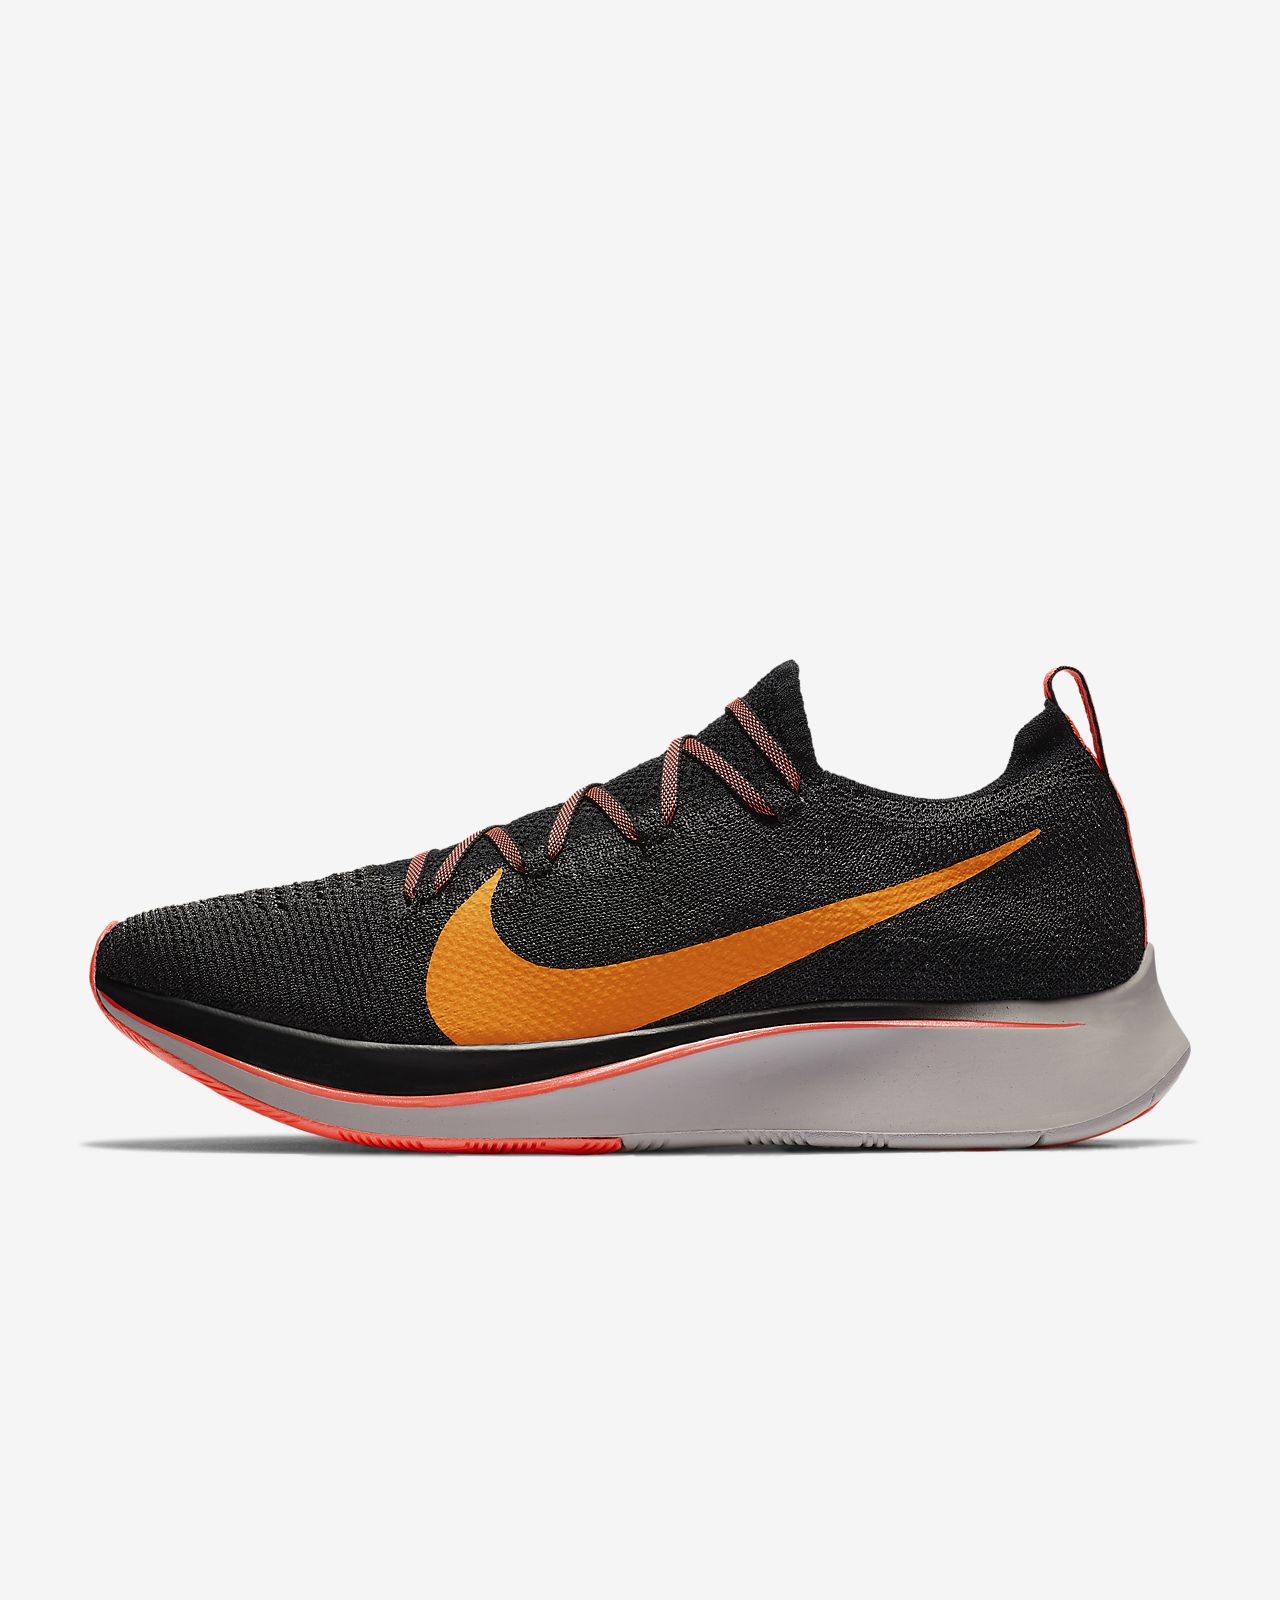 Nike Zoom Fly Flyknit Mens Running Shoe